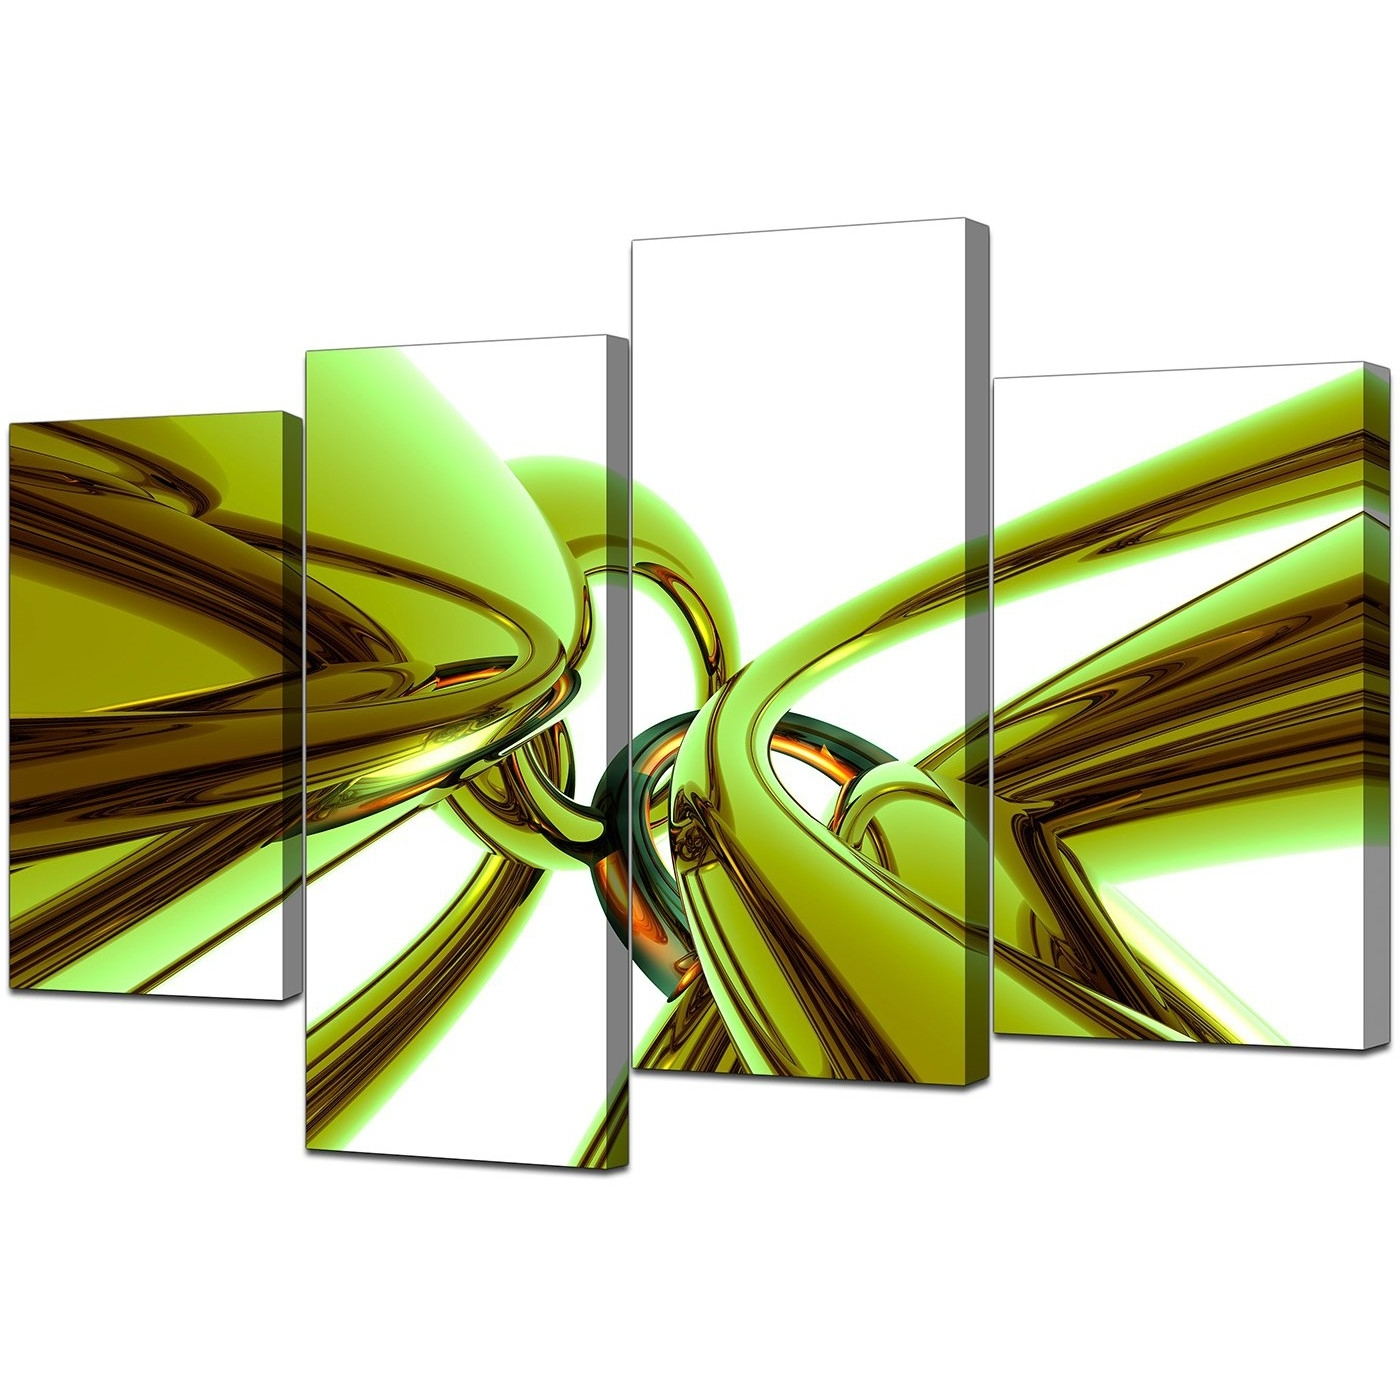 Abstract Canvas Wall Art In Green For Your Living Room – Set Of 4 Within Fashionable Green Wall Art (View 1 of 15)